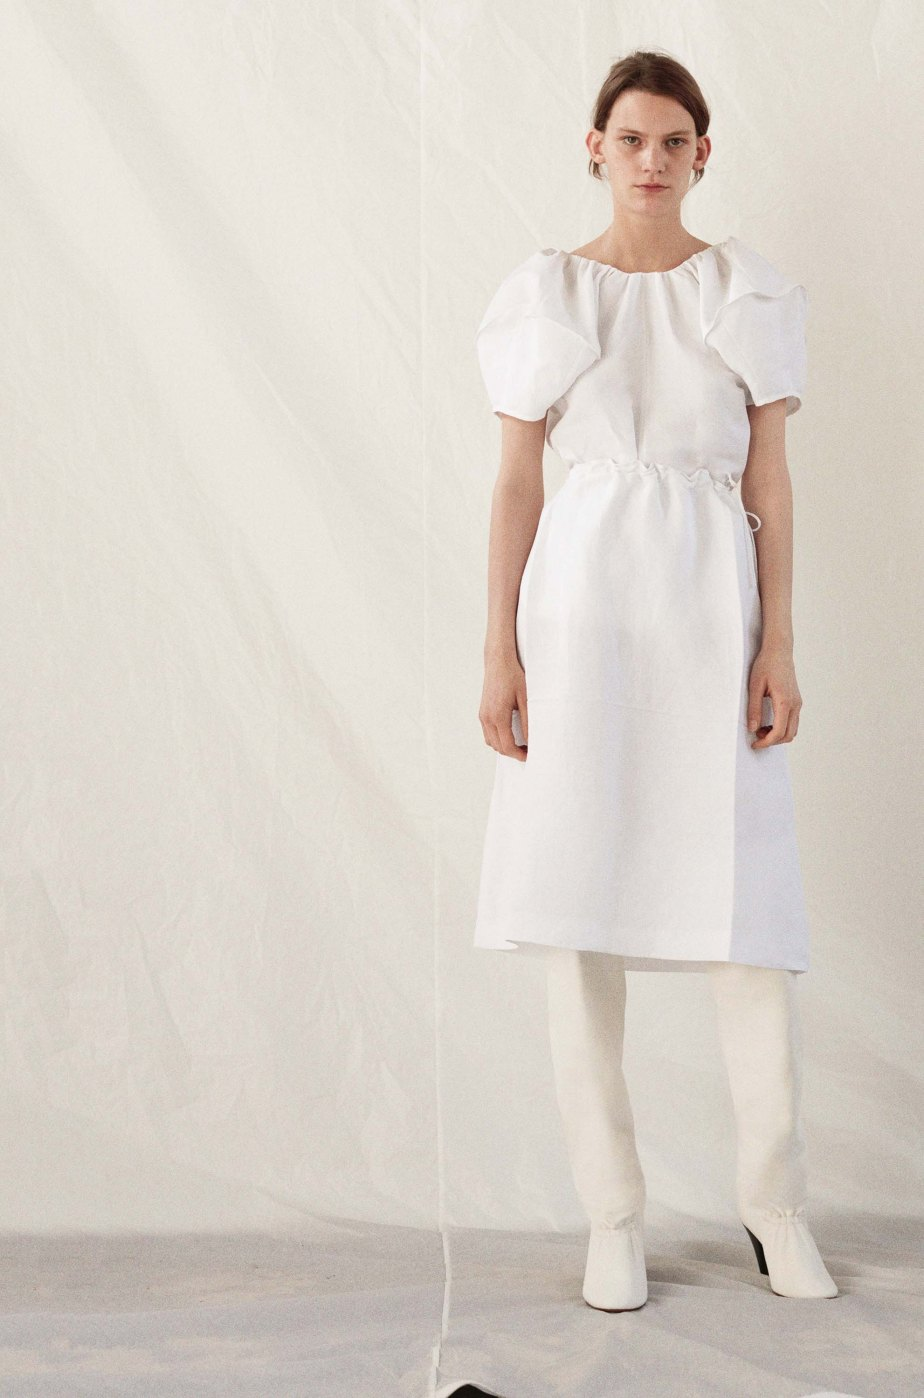 23-celine-resort-17